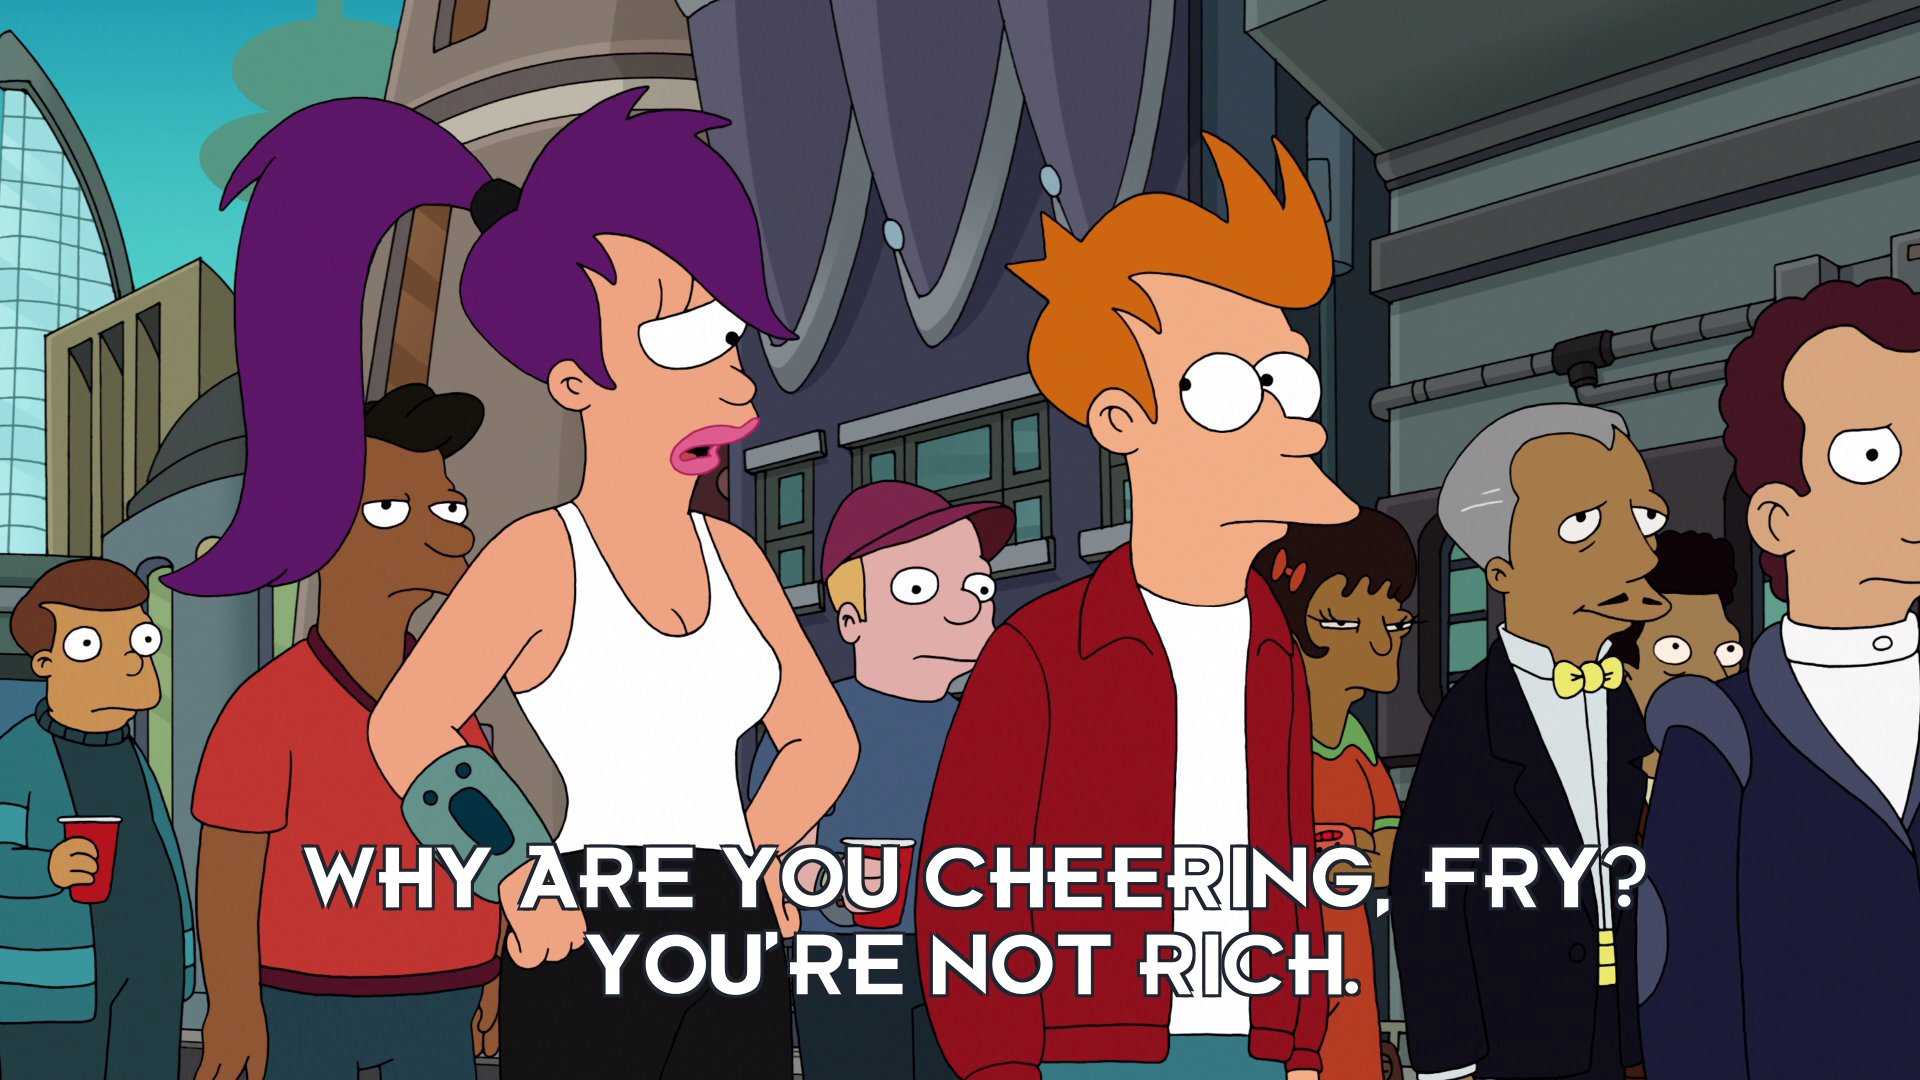 Turanga Leela: Why are you cheering, Fry? You're not rich.